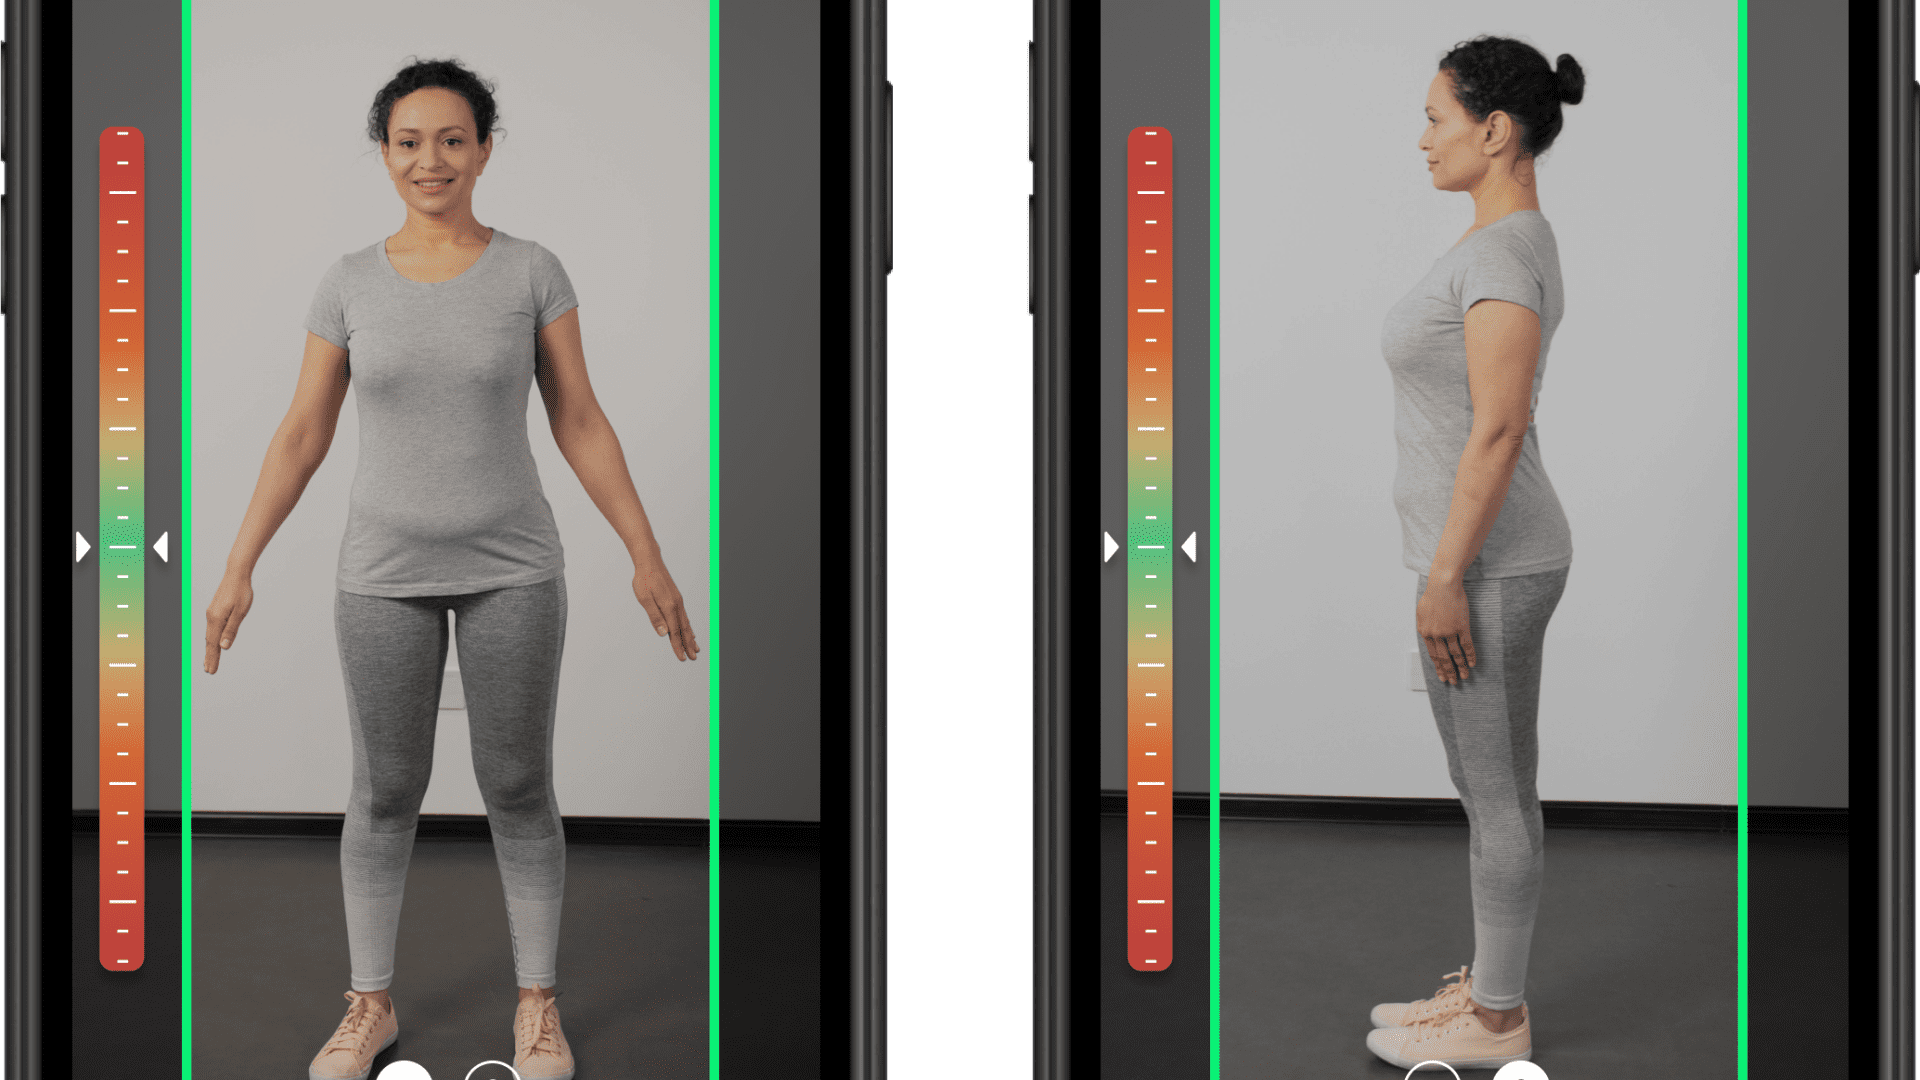 3DLOOK's virtual fitting room technology gives users recommendations for styles based on their sizes.